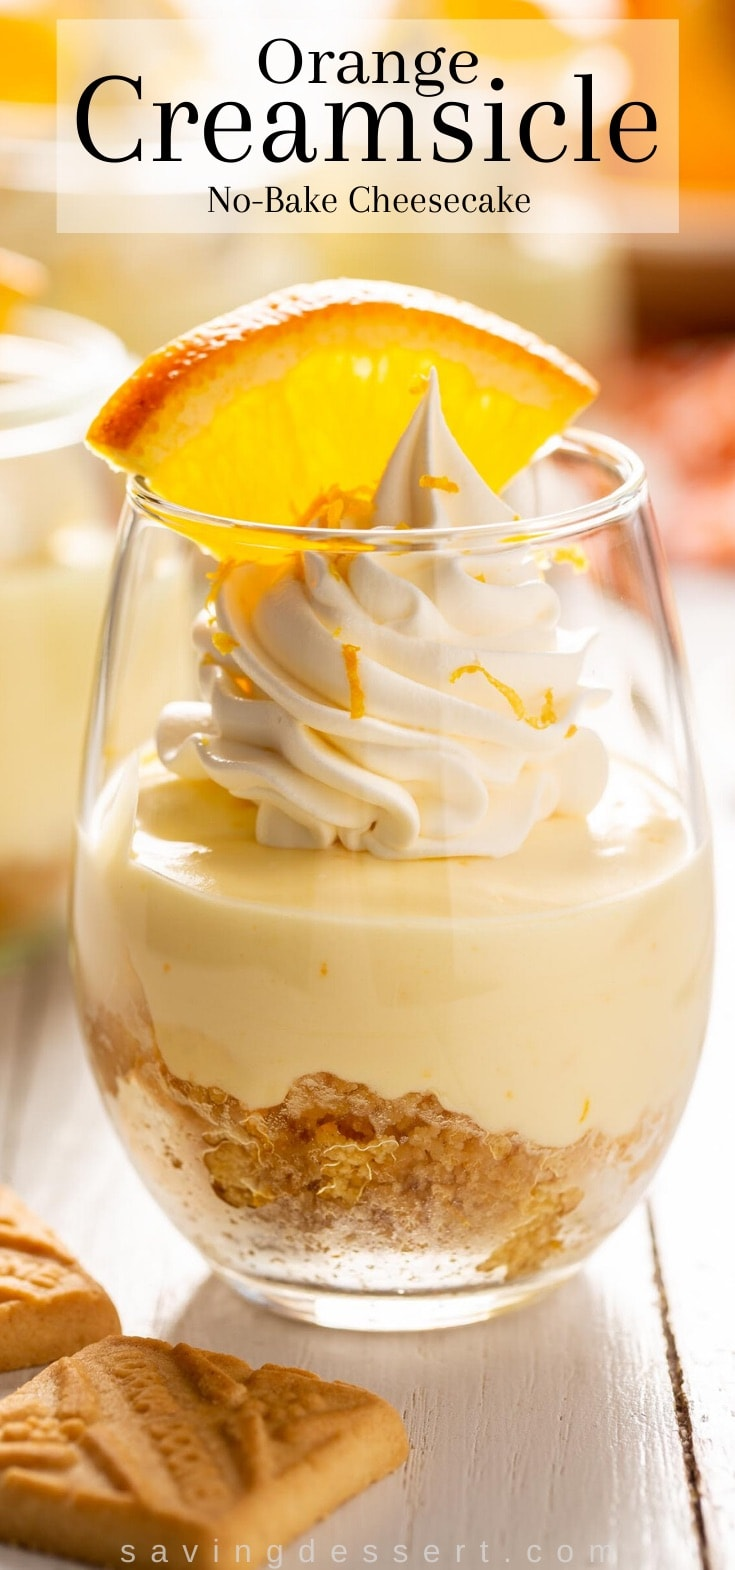 A small glass filled with orange creamsicle dessert topped with whipped cream and an orange slice